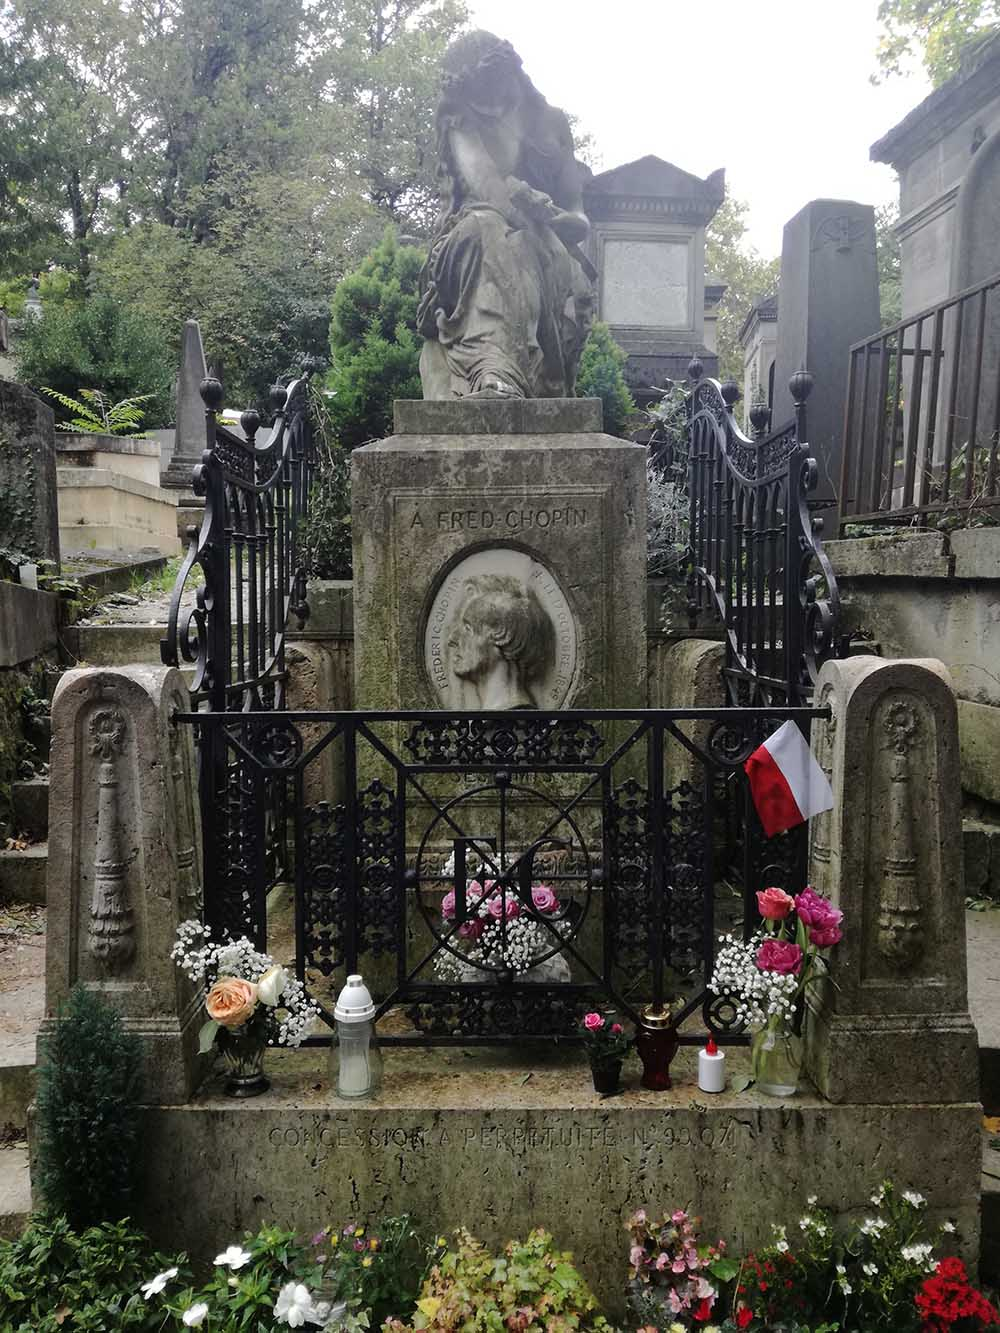 Chopin's grave